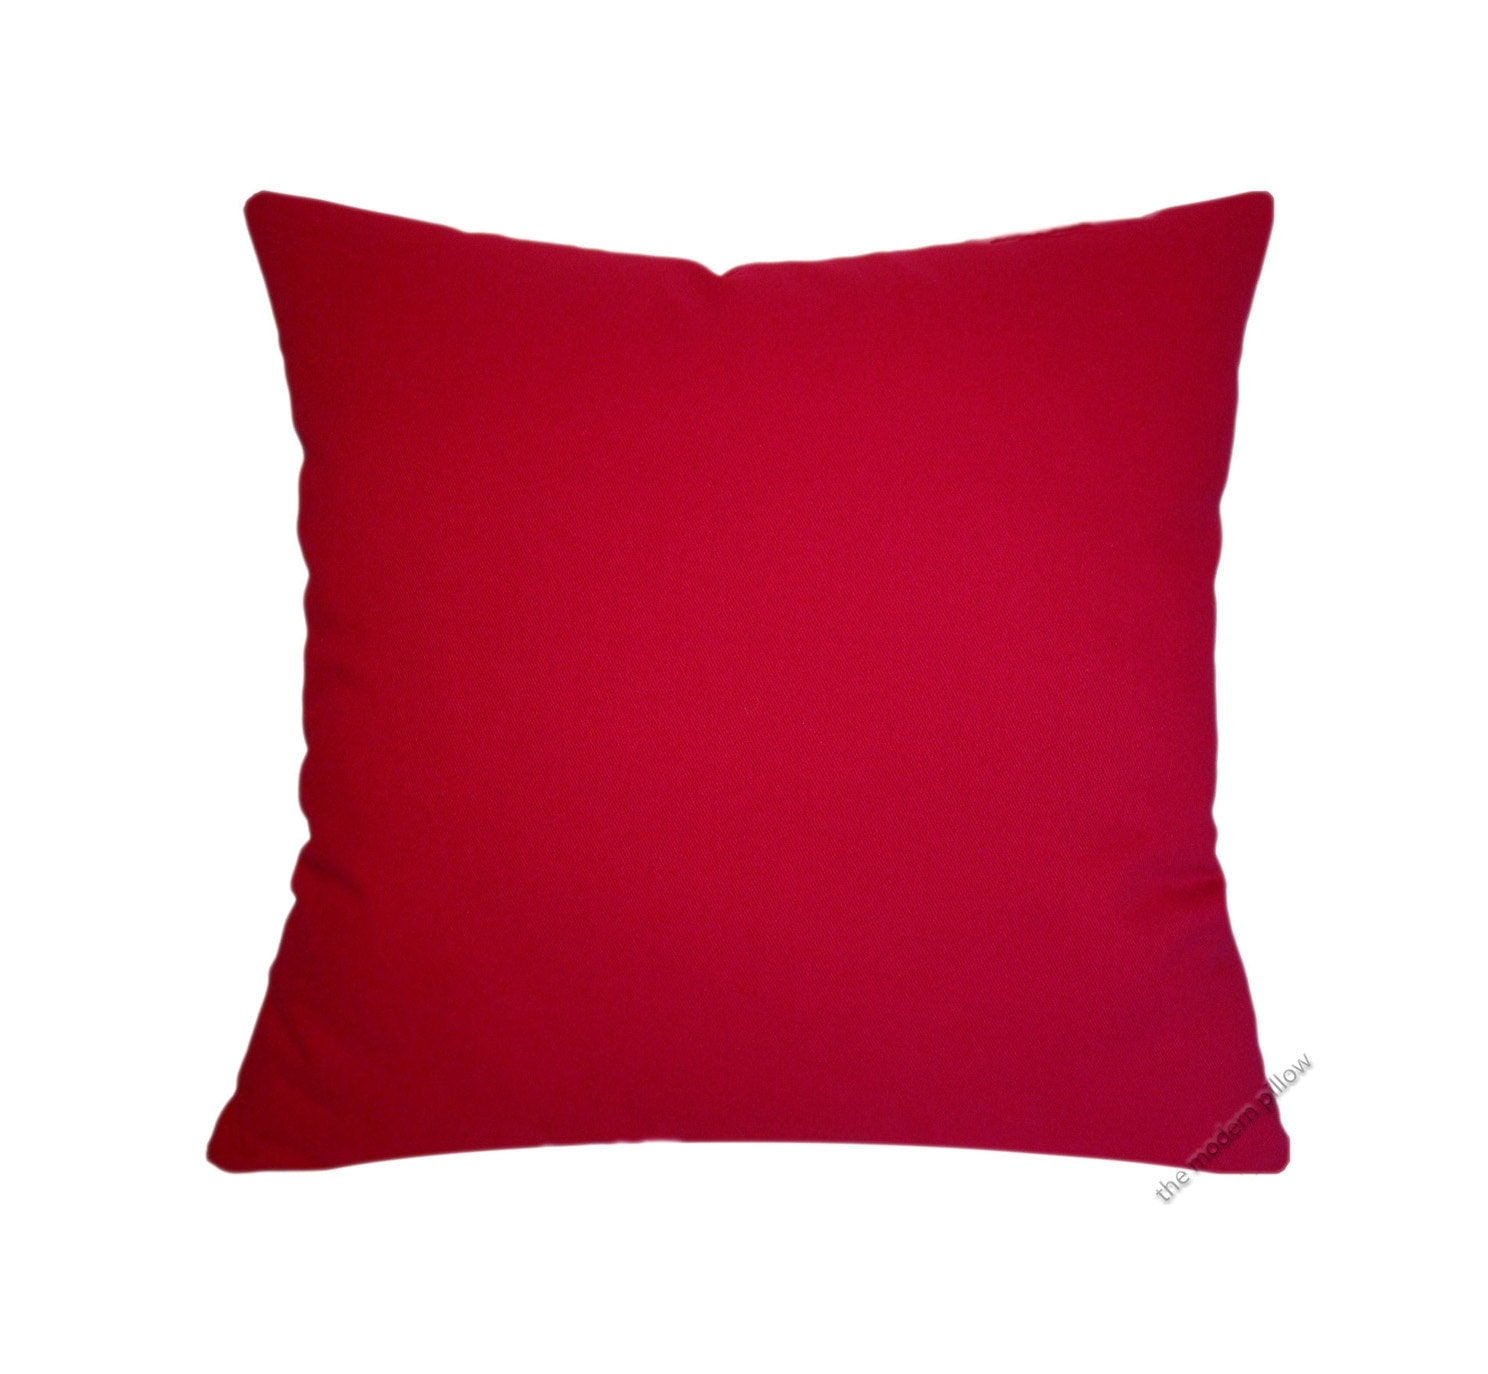 Red Solid Decorative Throw Pillow Cover / Pillow Case